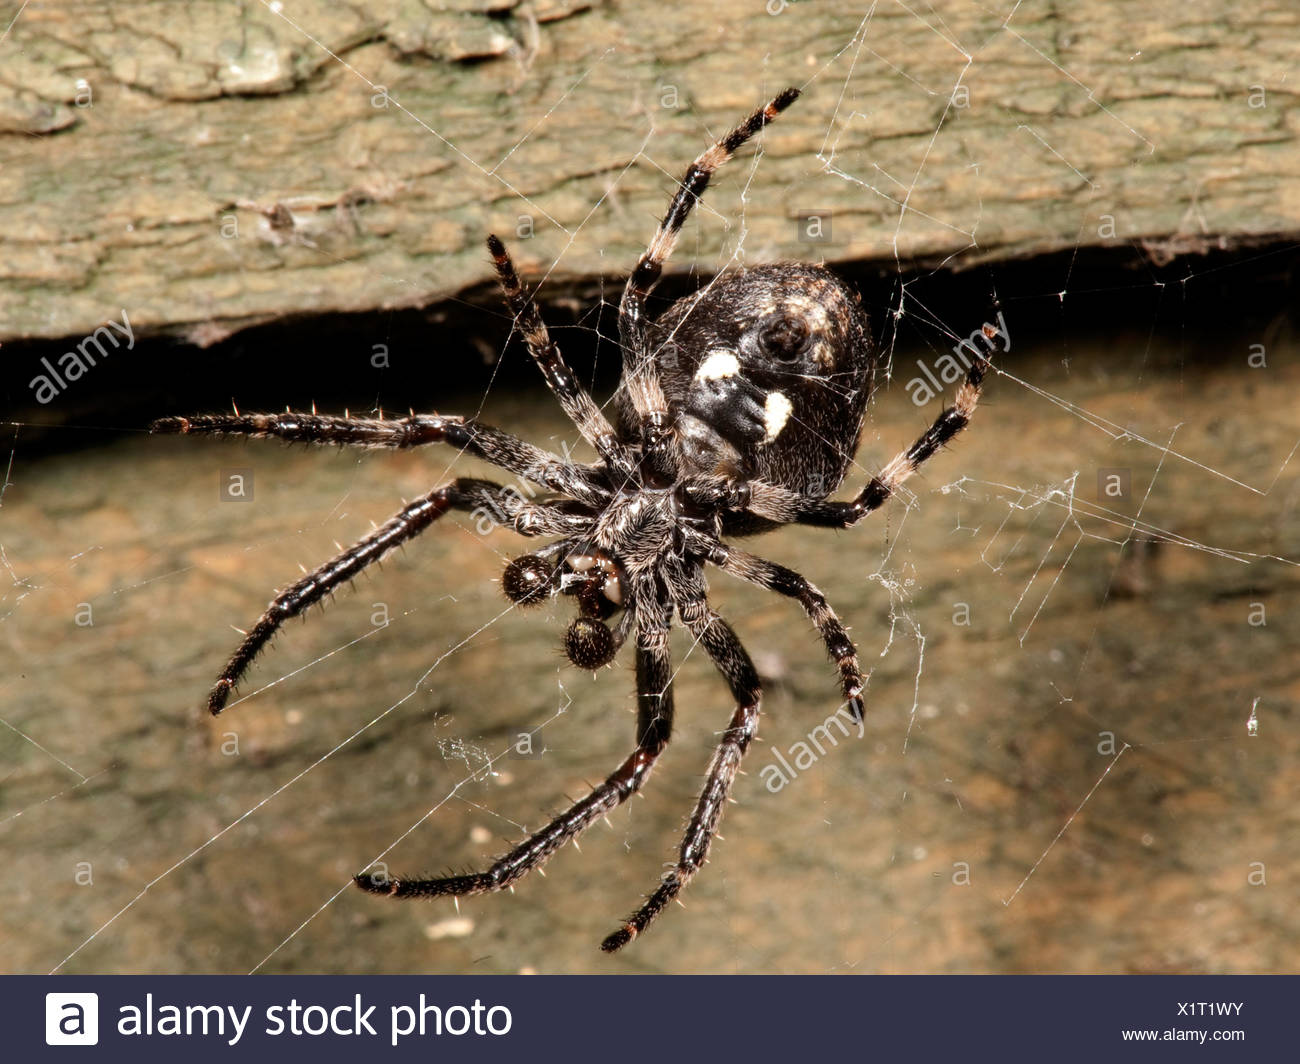 Walnut Orb Weaver Spider nuctenea umbratica nocturnat on fence panel in garden - Stock Image